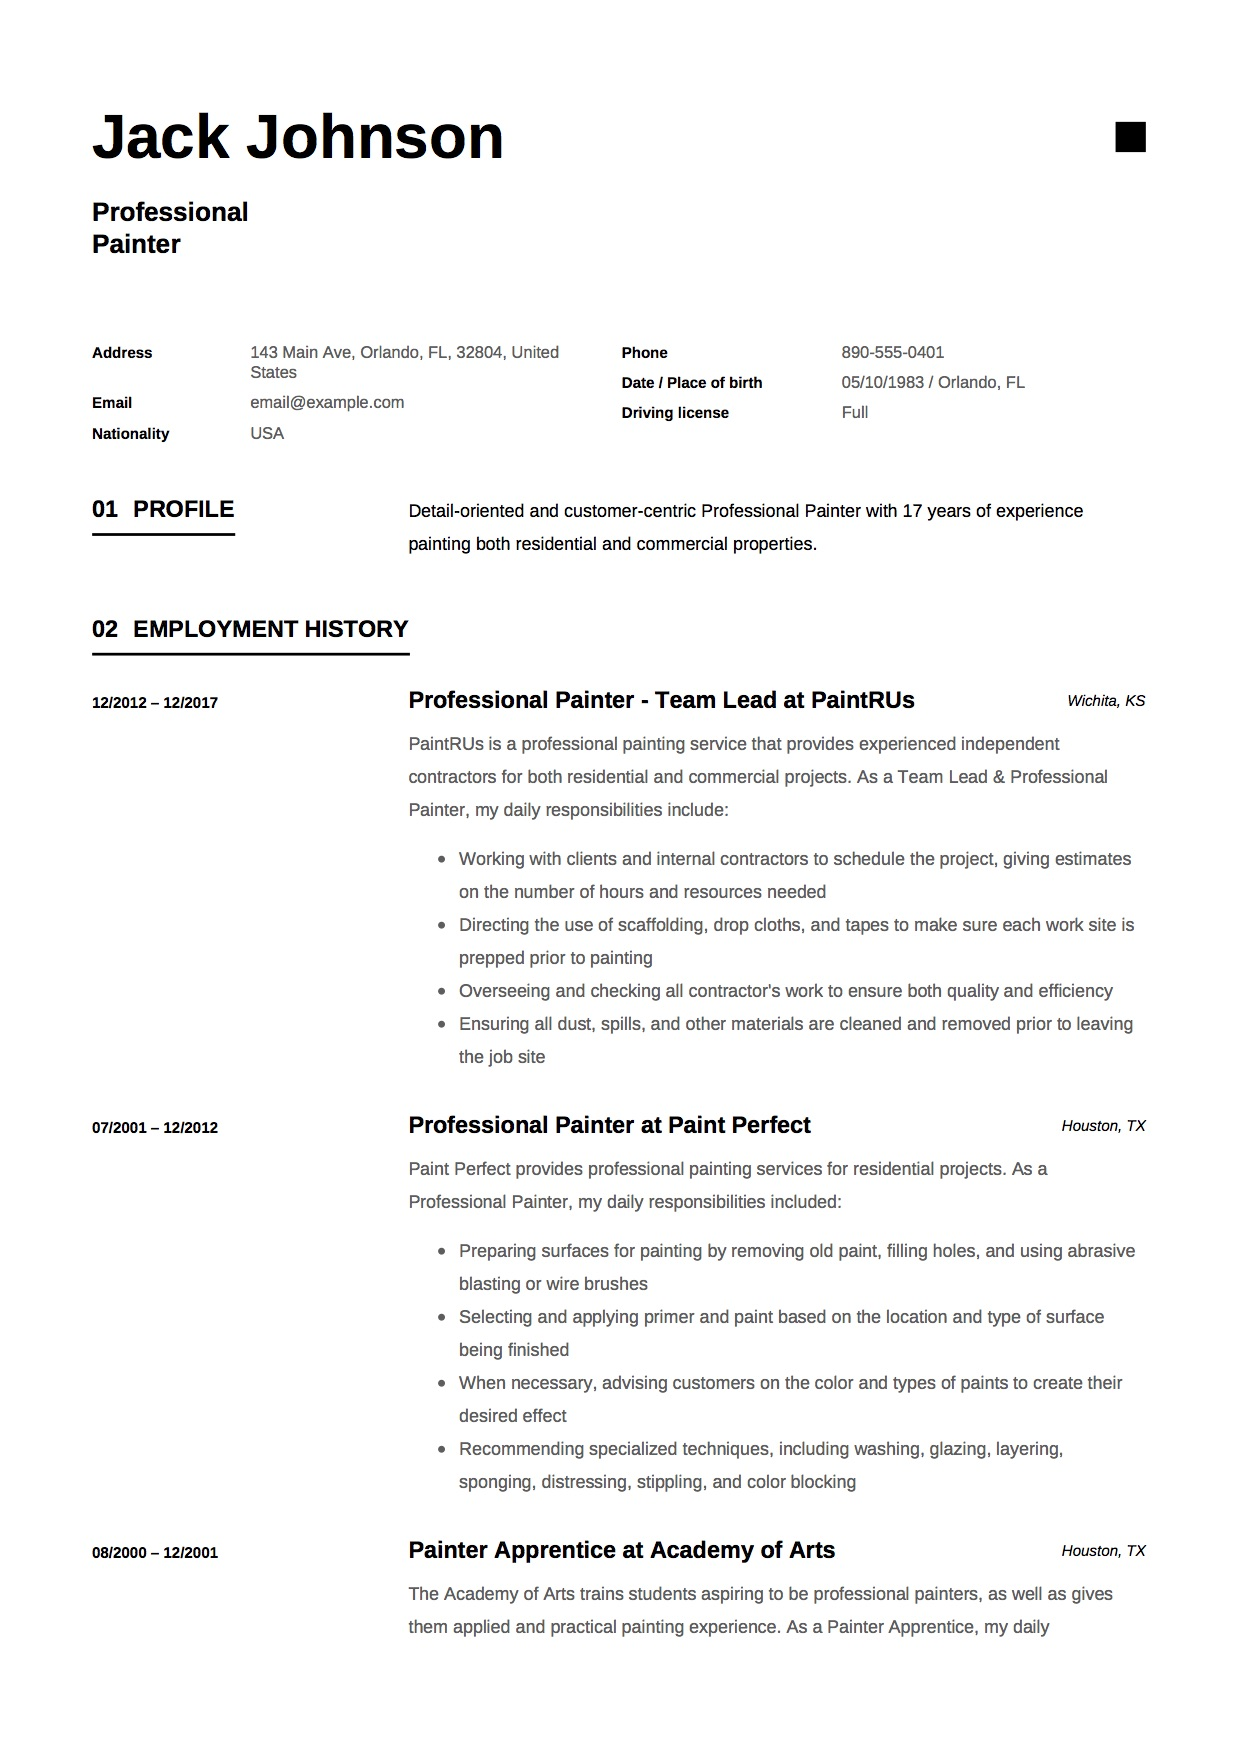 Resume Format For Professionals 12 Commercial Painter Resume Sample S 2018 Free Downloads